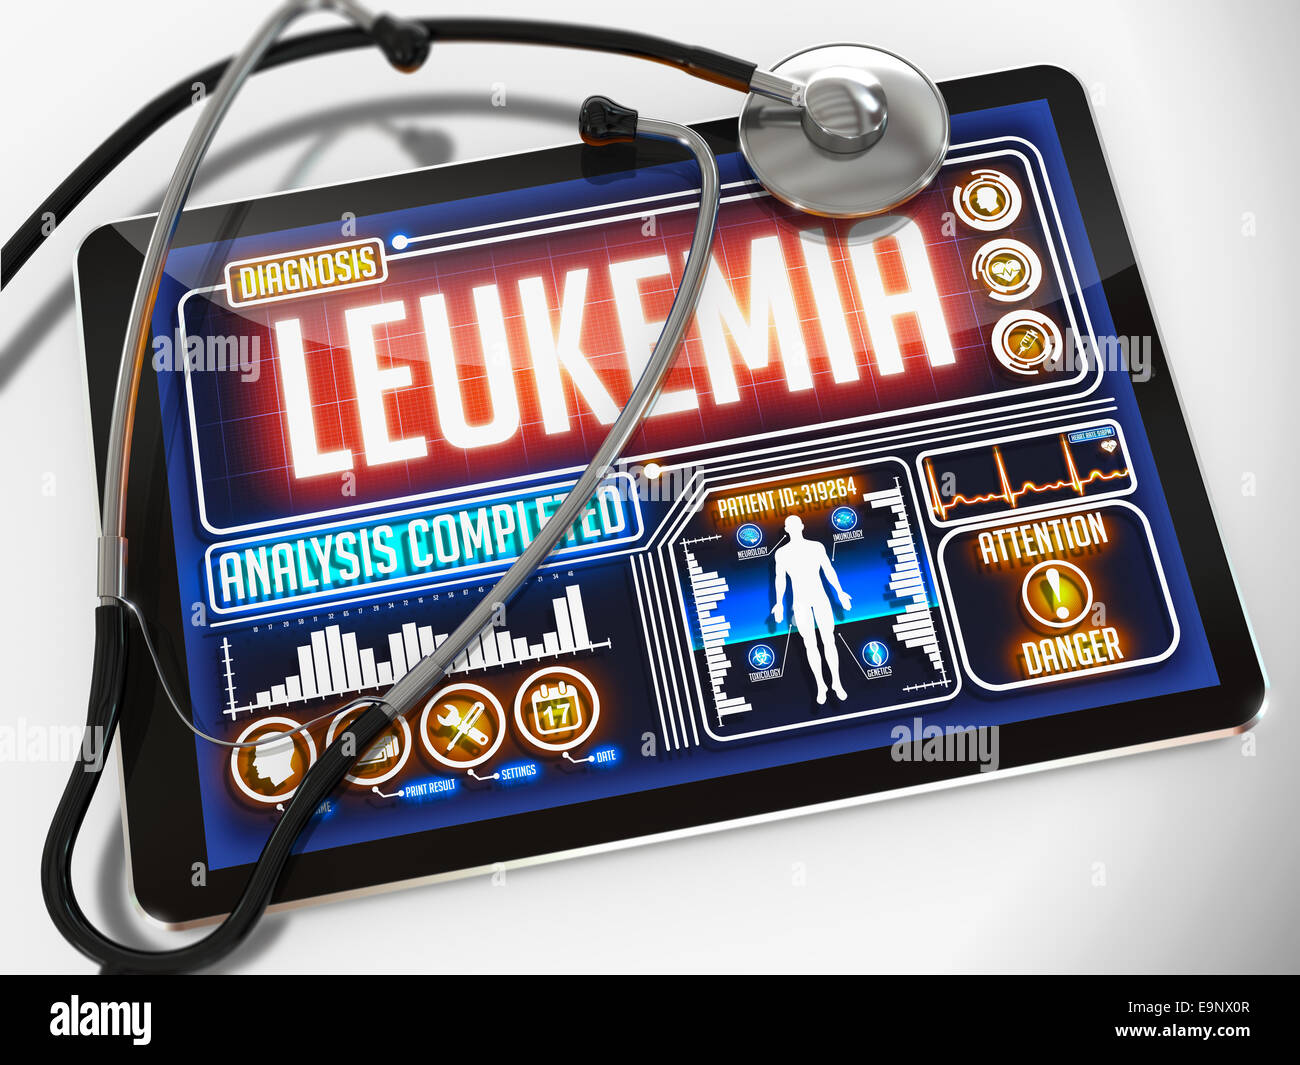 Leukemia on the Display of Medical Tablet. - Stock Image